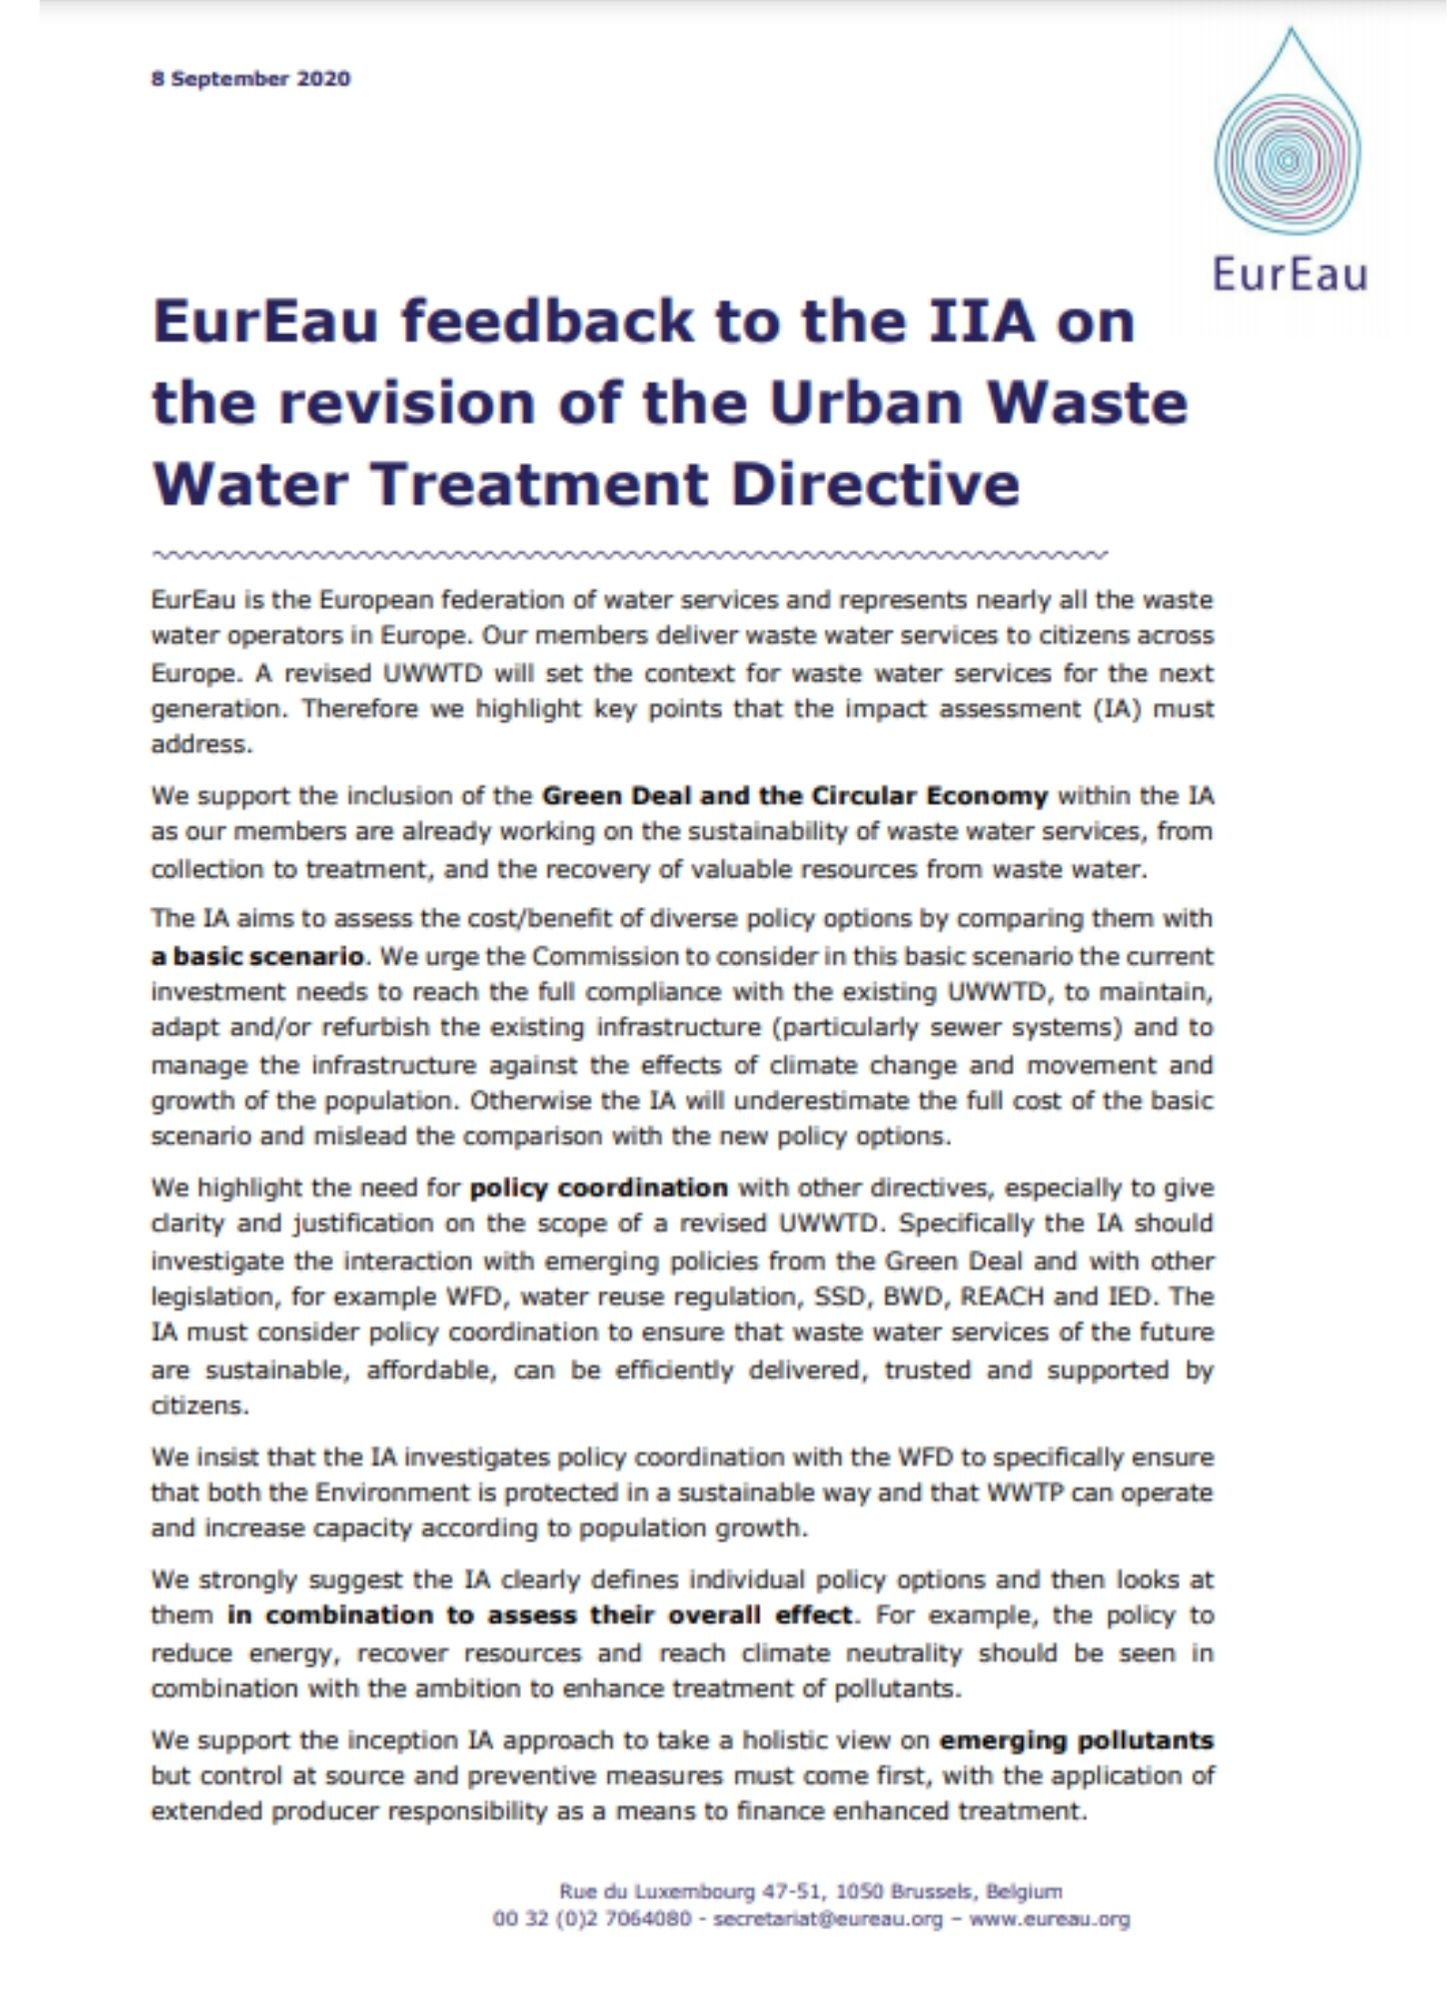 EurEau feedback on the Inception Impact Assessment of the UWWTD